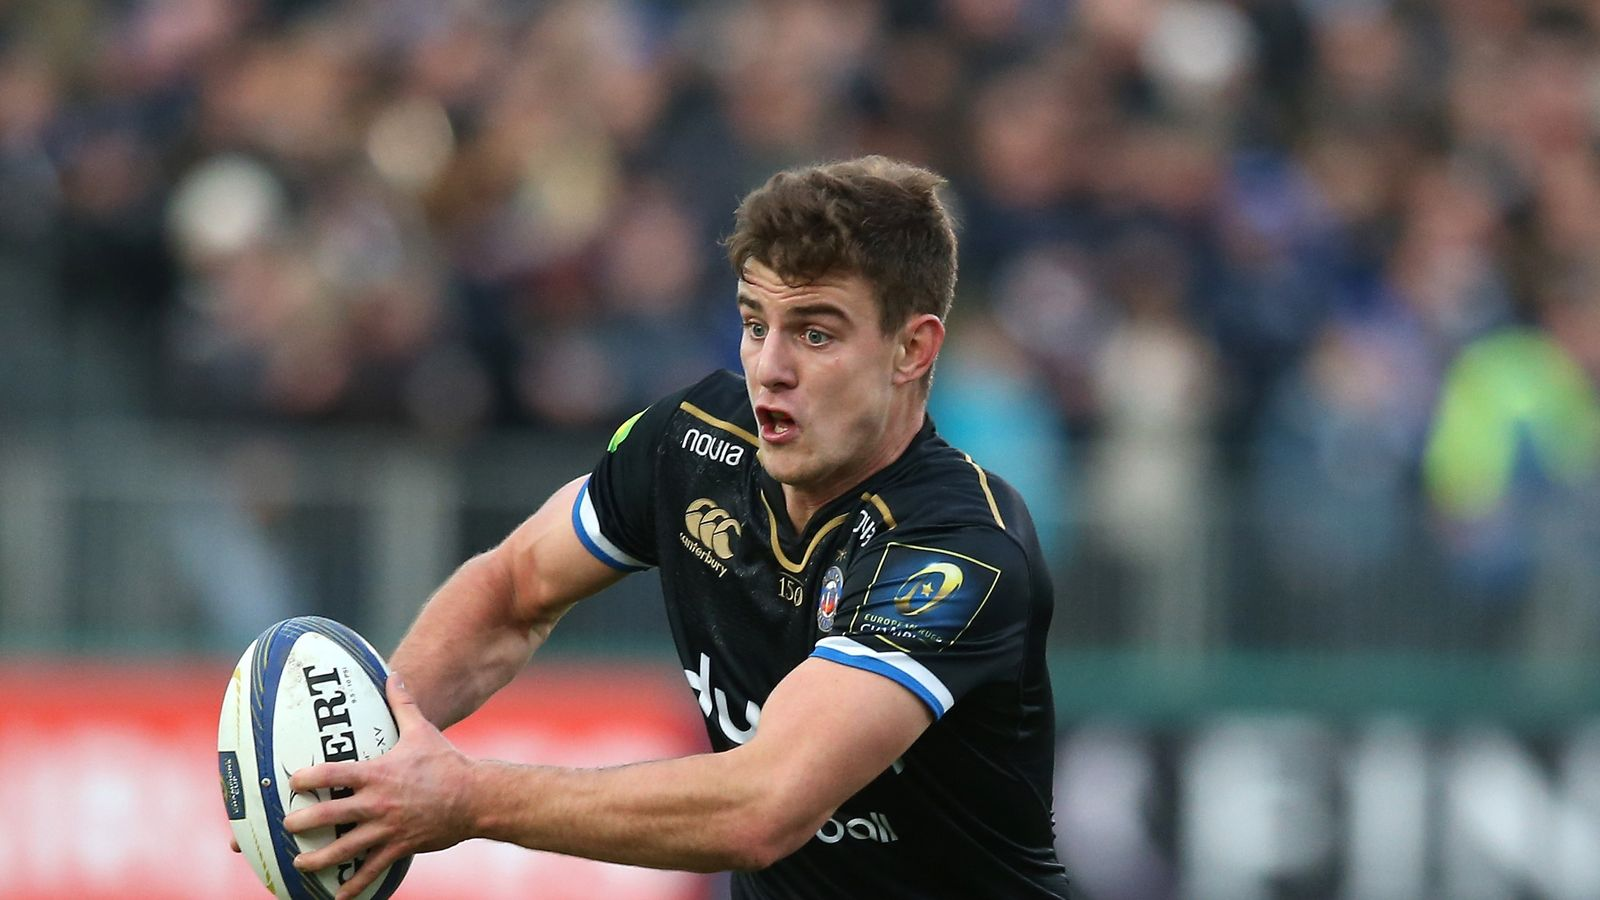 England Squad Member Ollie Devoto To Join Exeter Chiefs